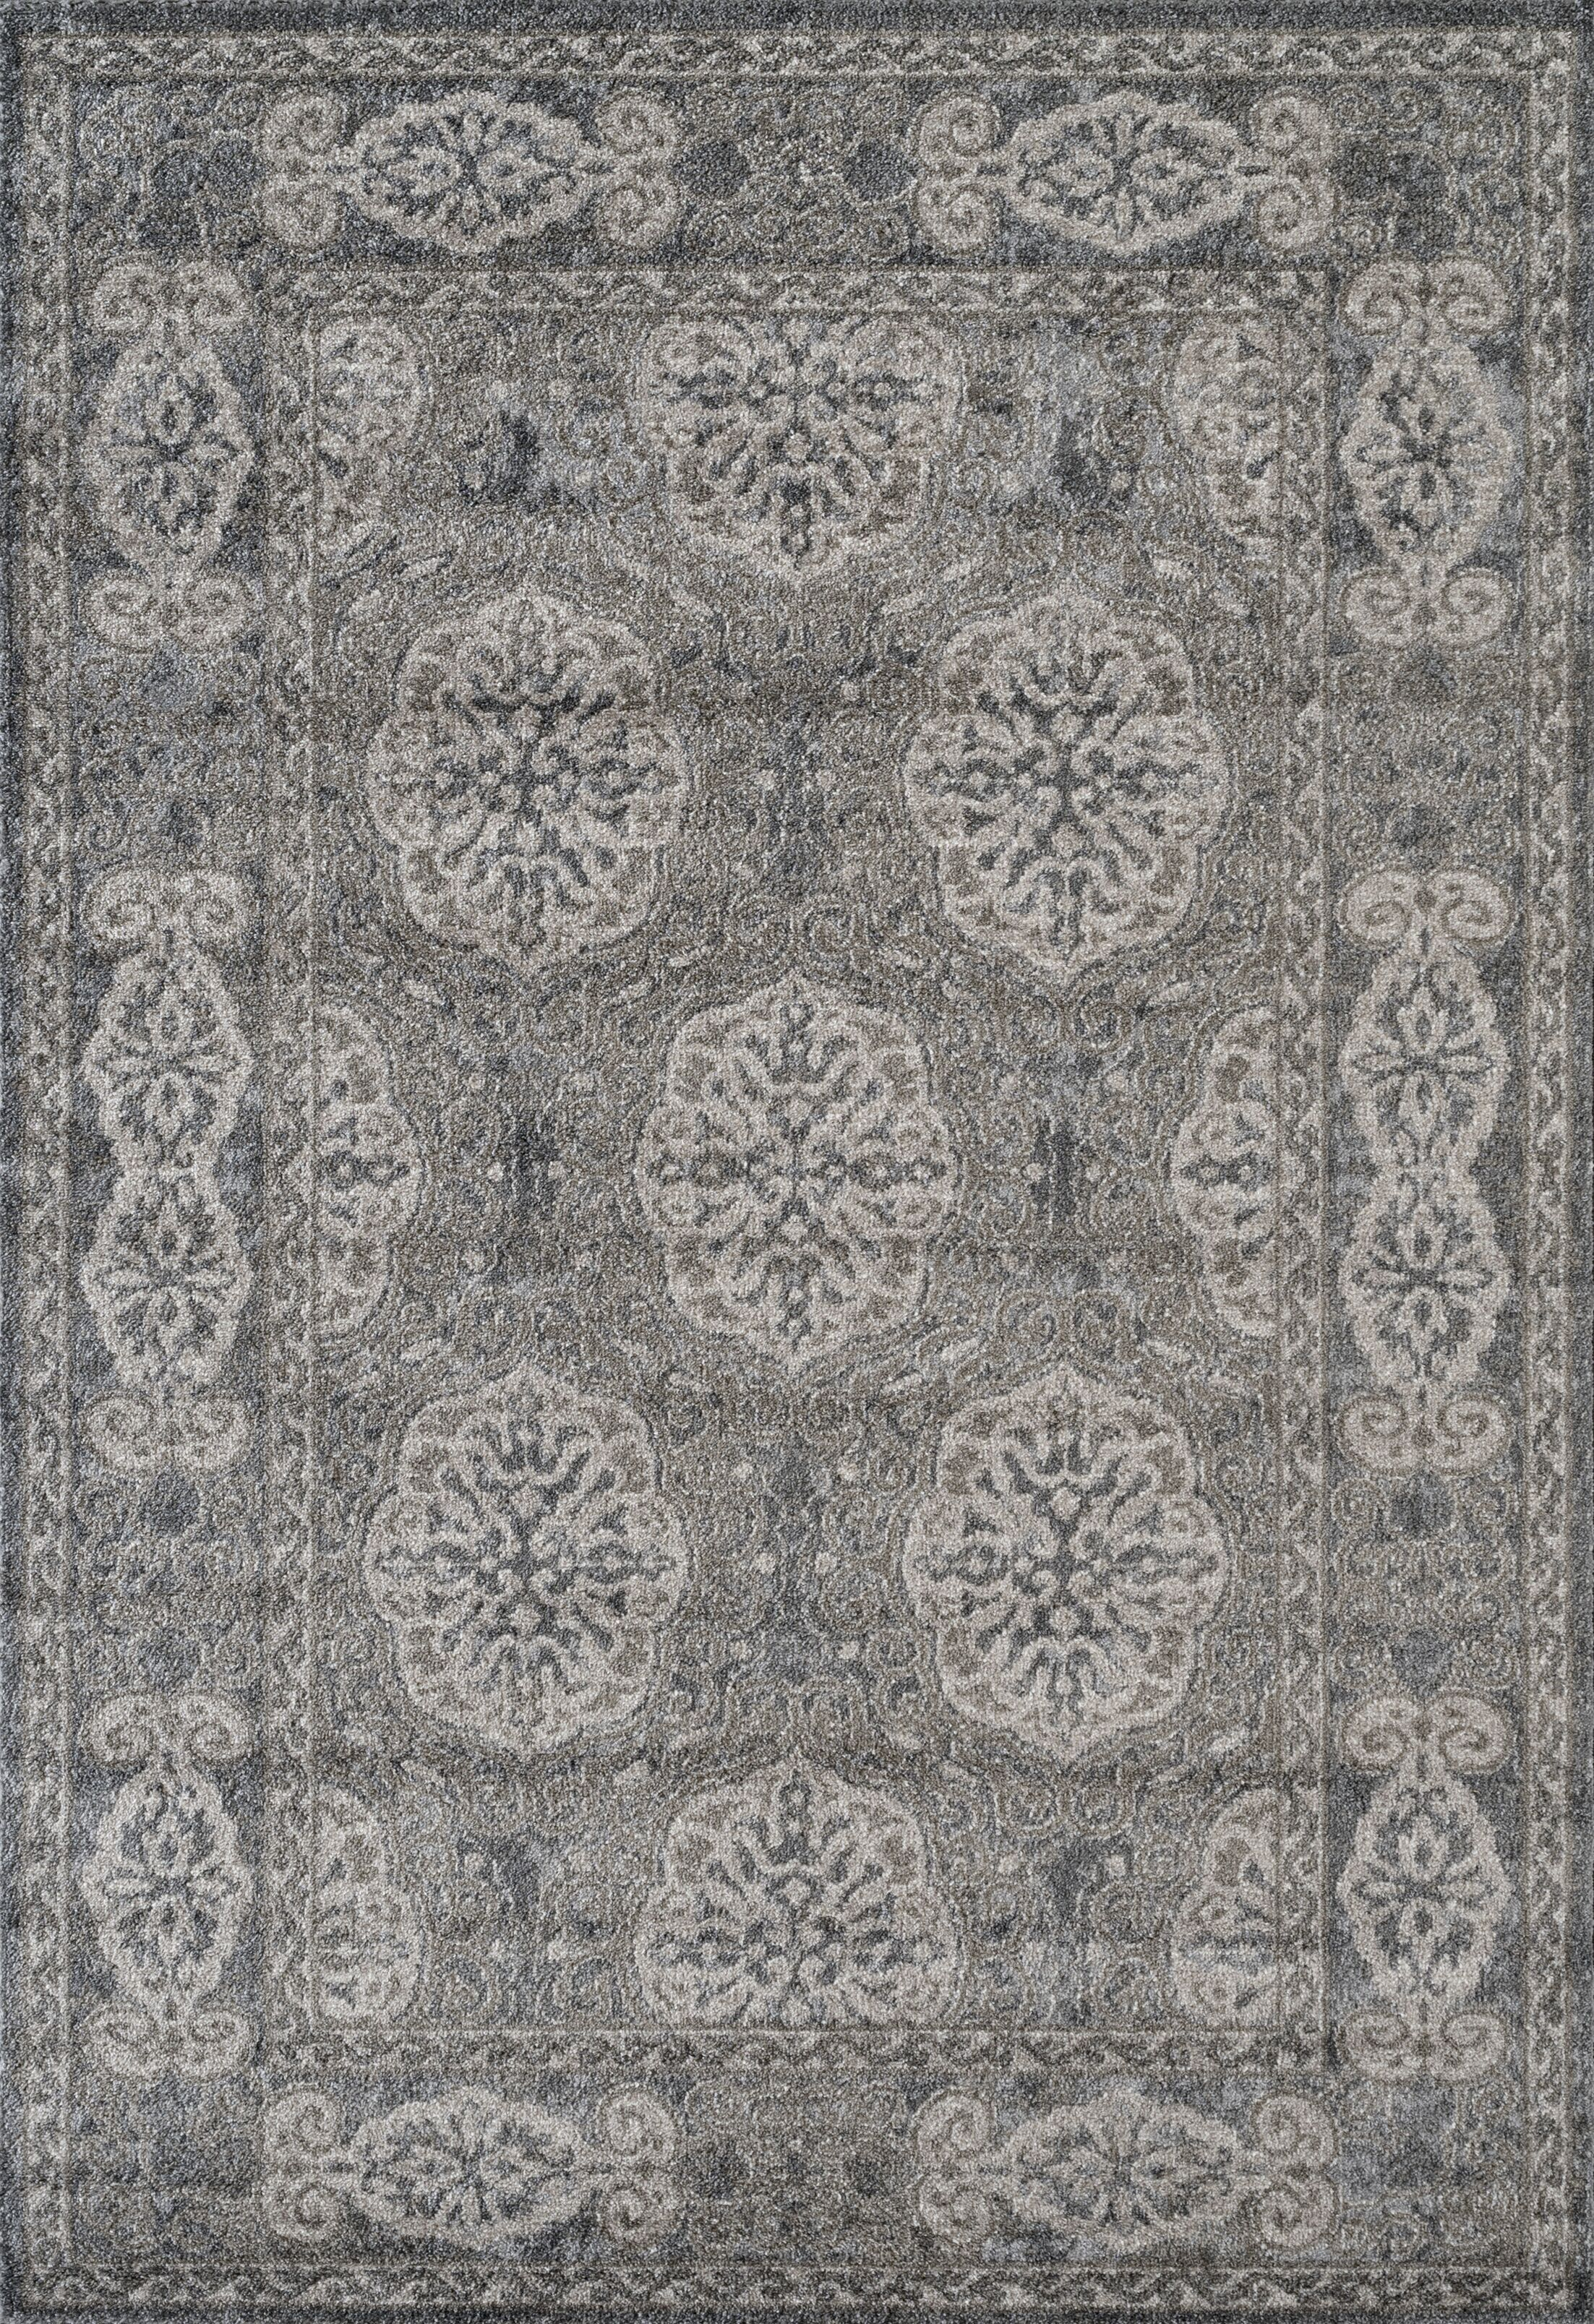 Honig Transitional Gray Area Rug Rug Size: Rectangle 7'9